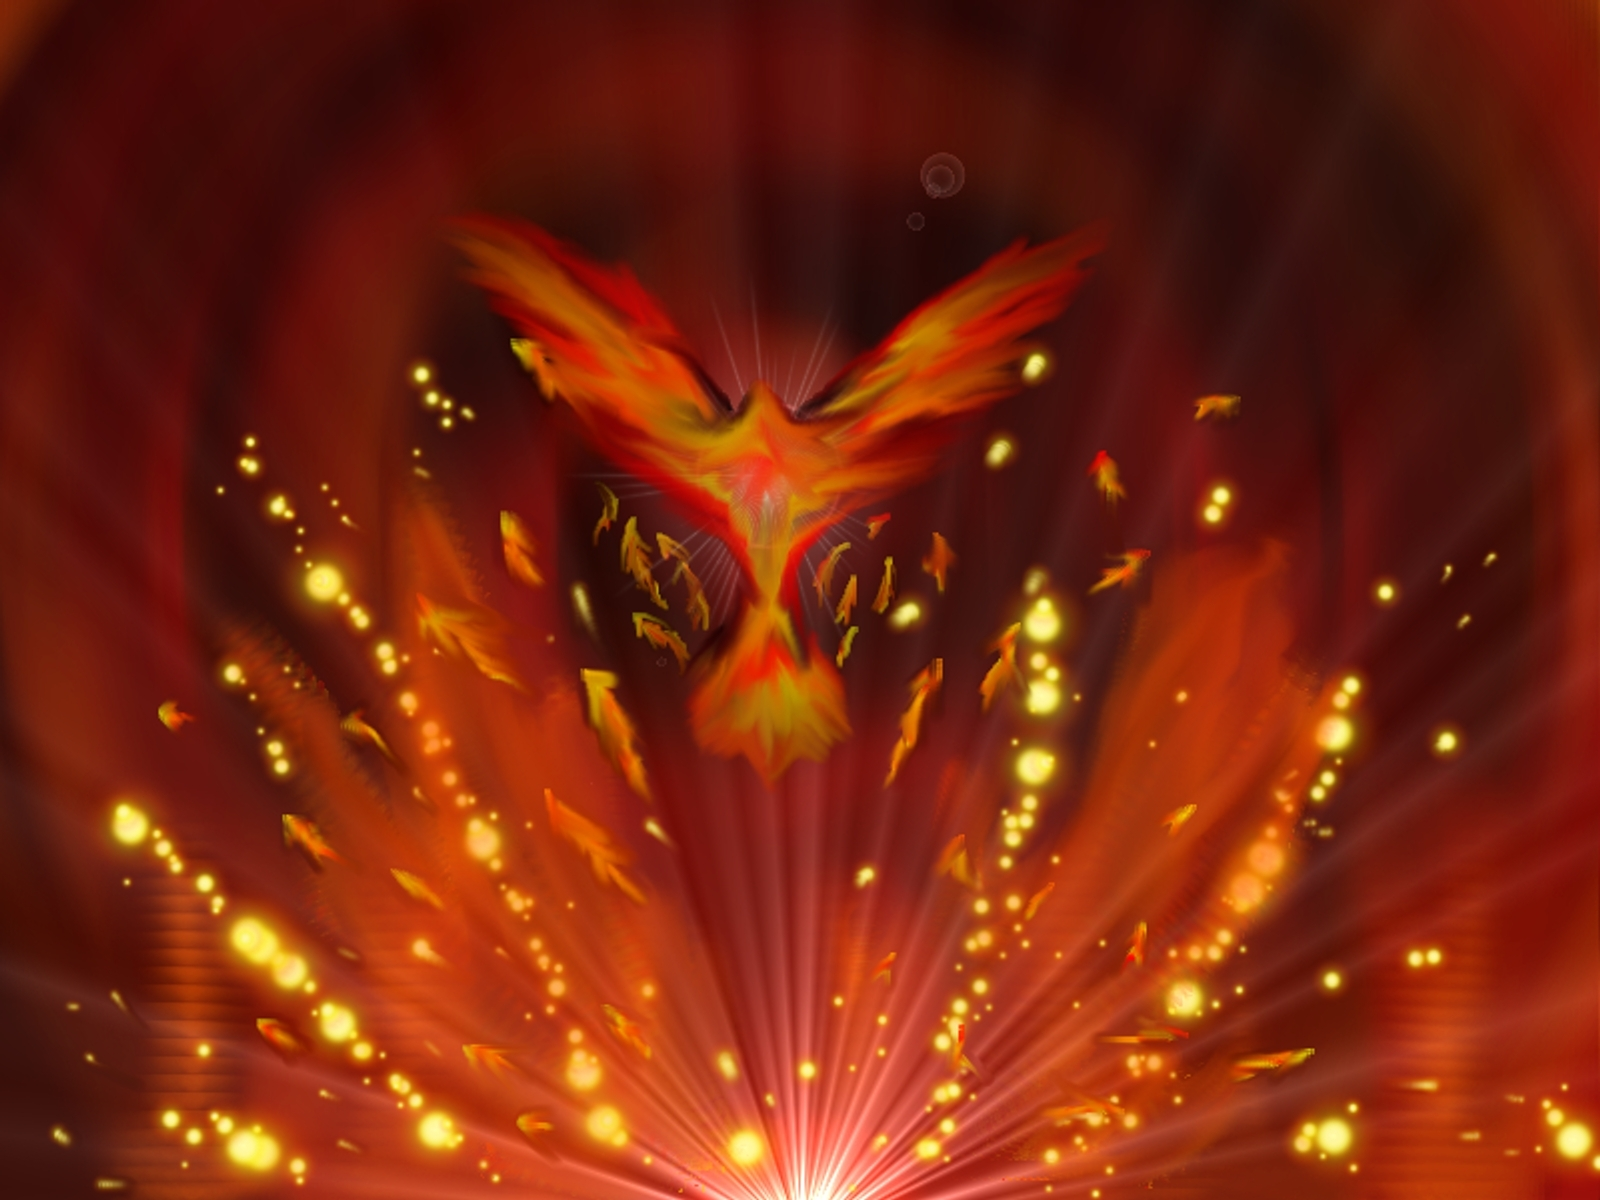 arising phoenix spielen